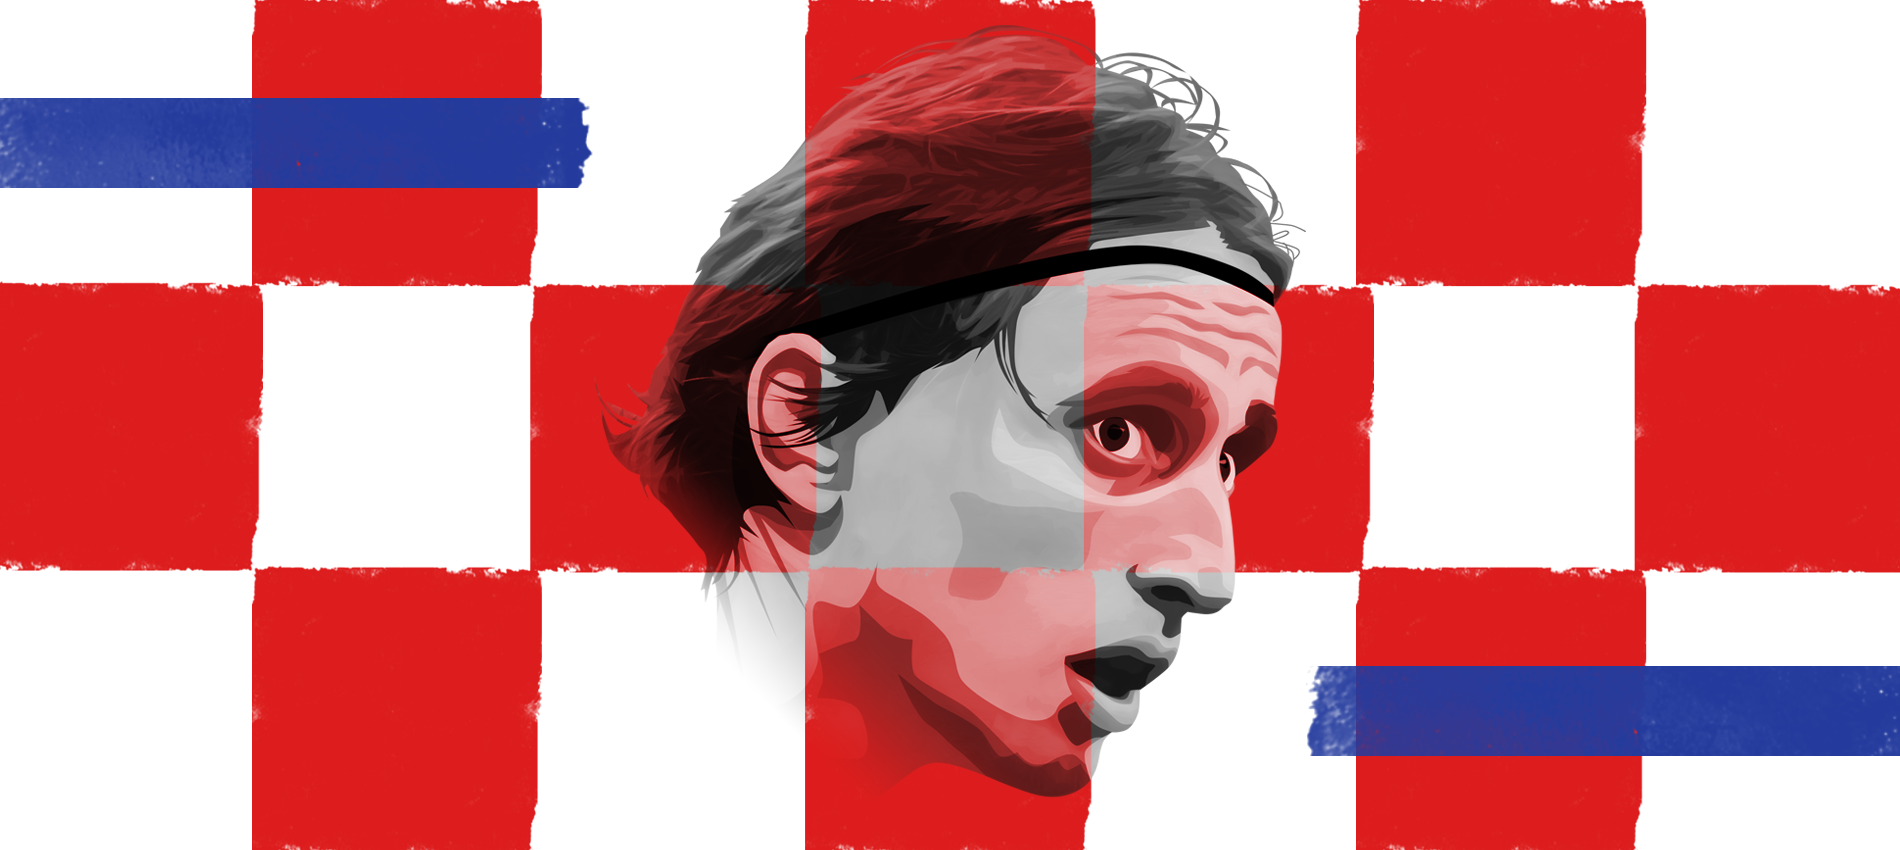 The Hair Pieces The Definitive Vatreni Alignment Guide Unusual Efforts